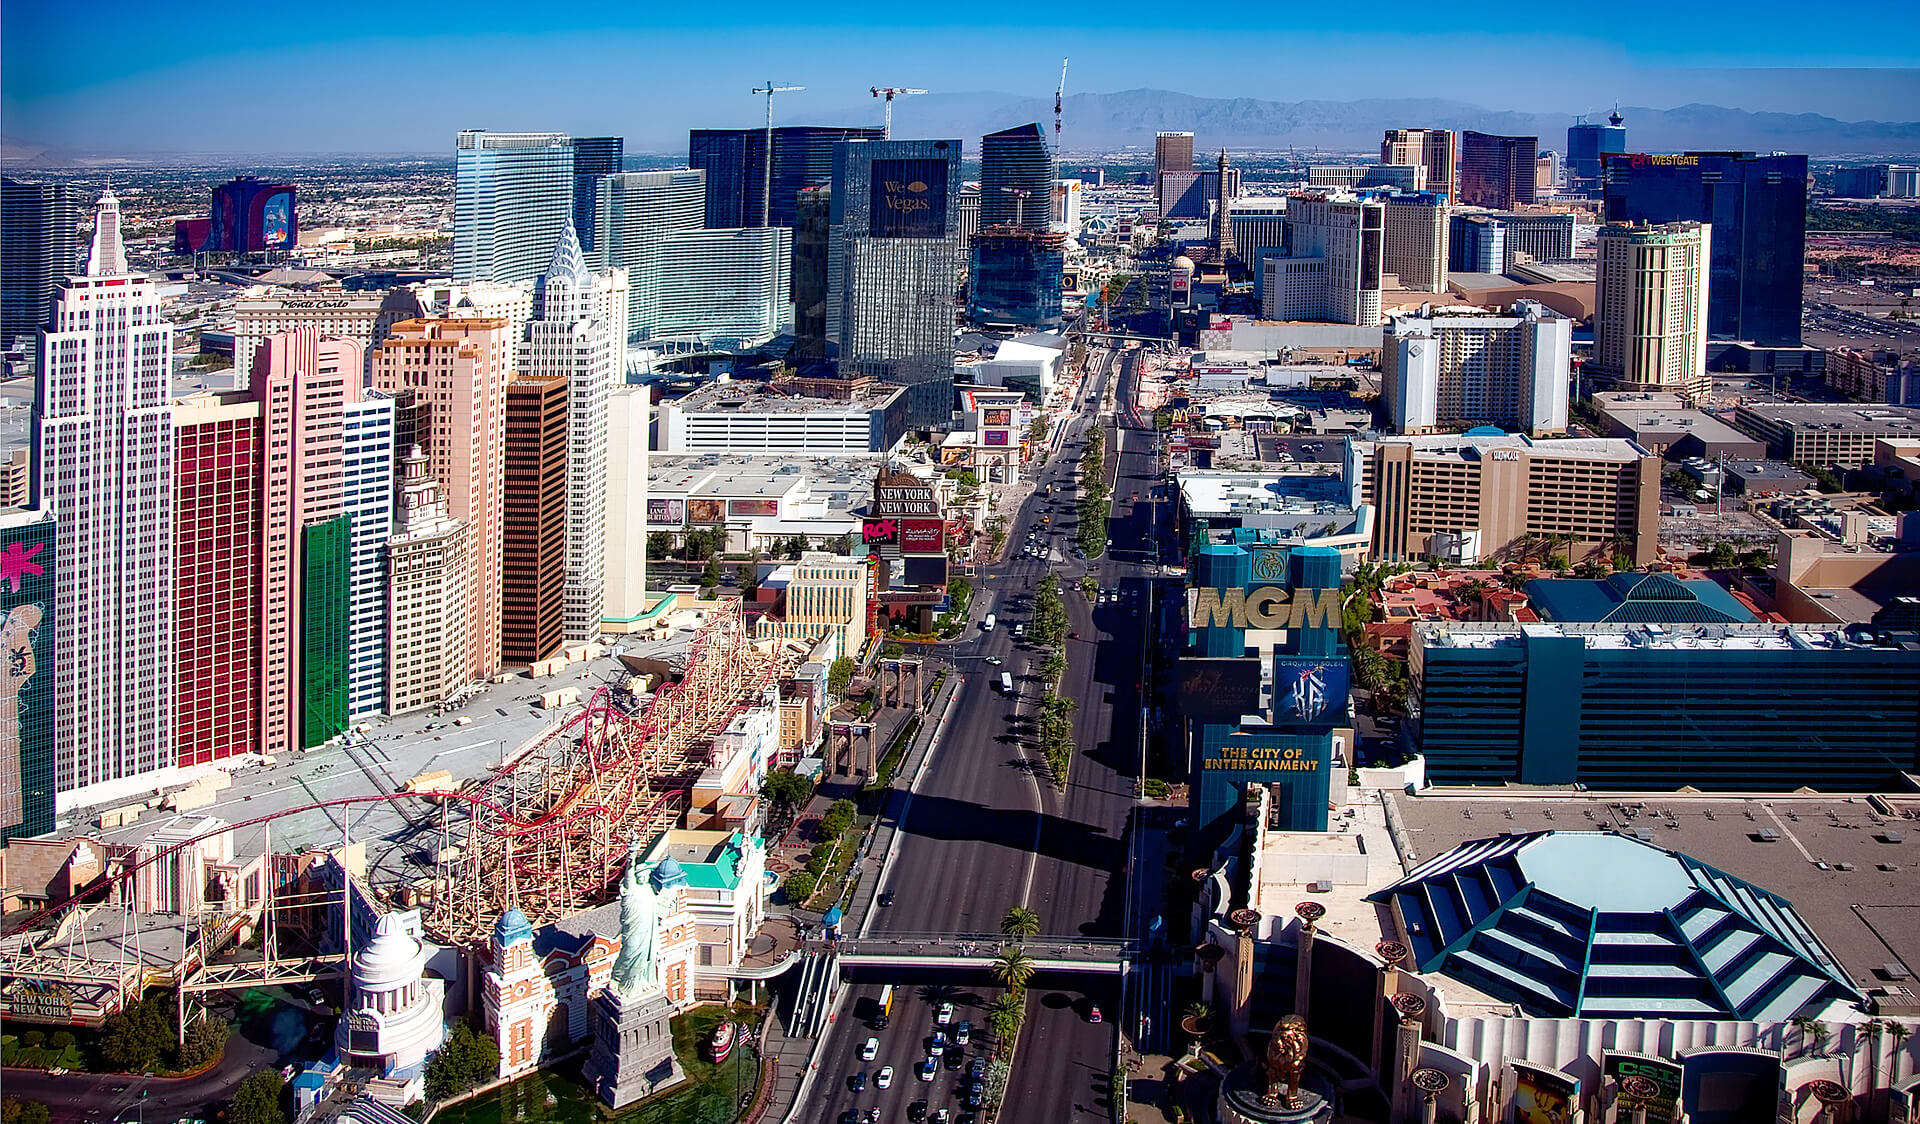 View of Vegas taken from a high vantage point during the day